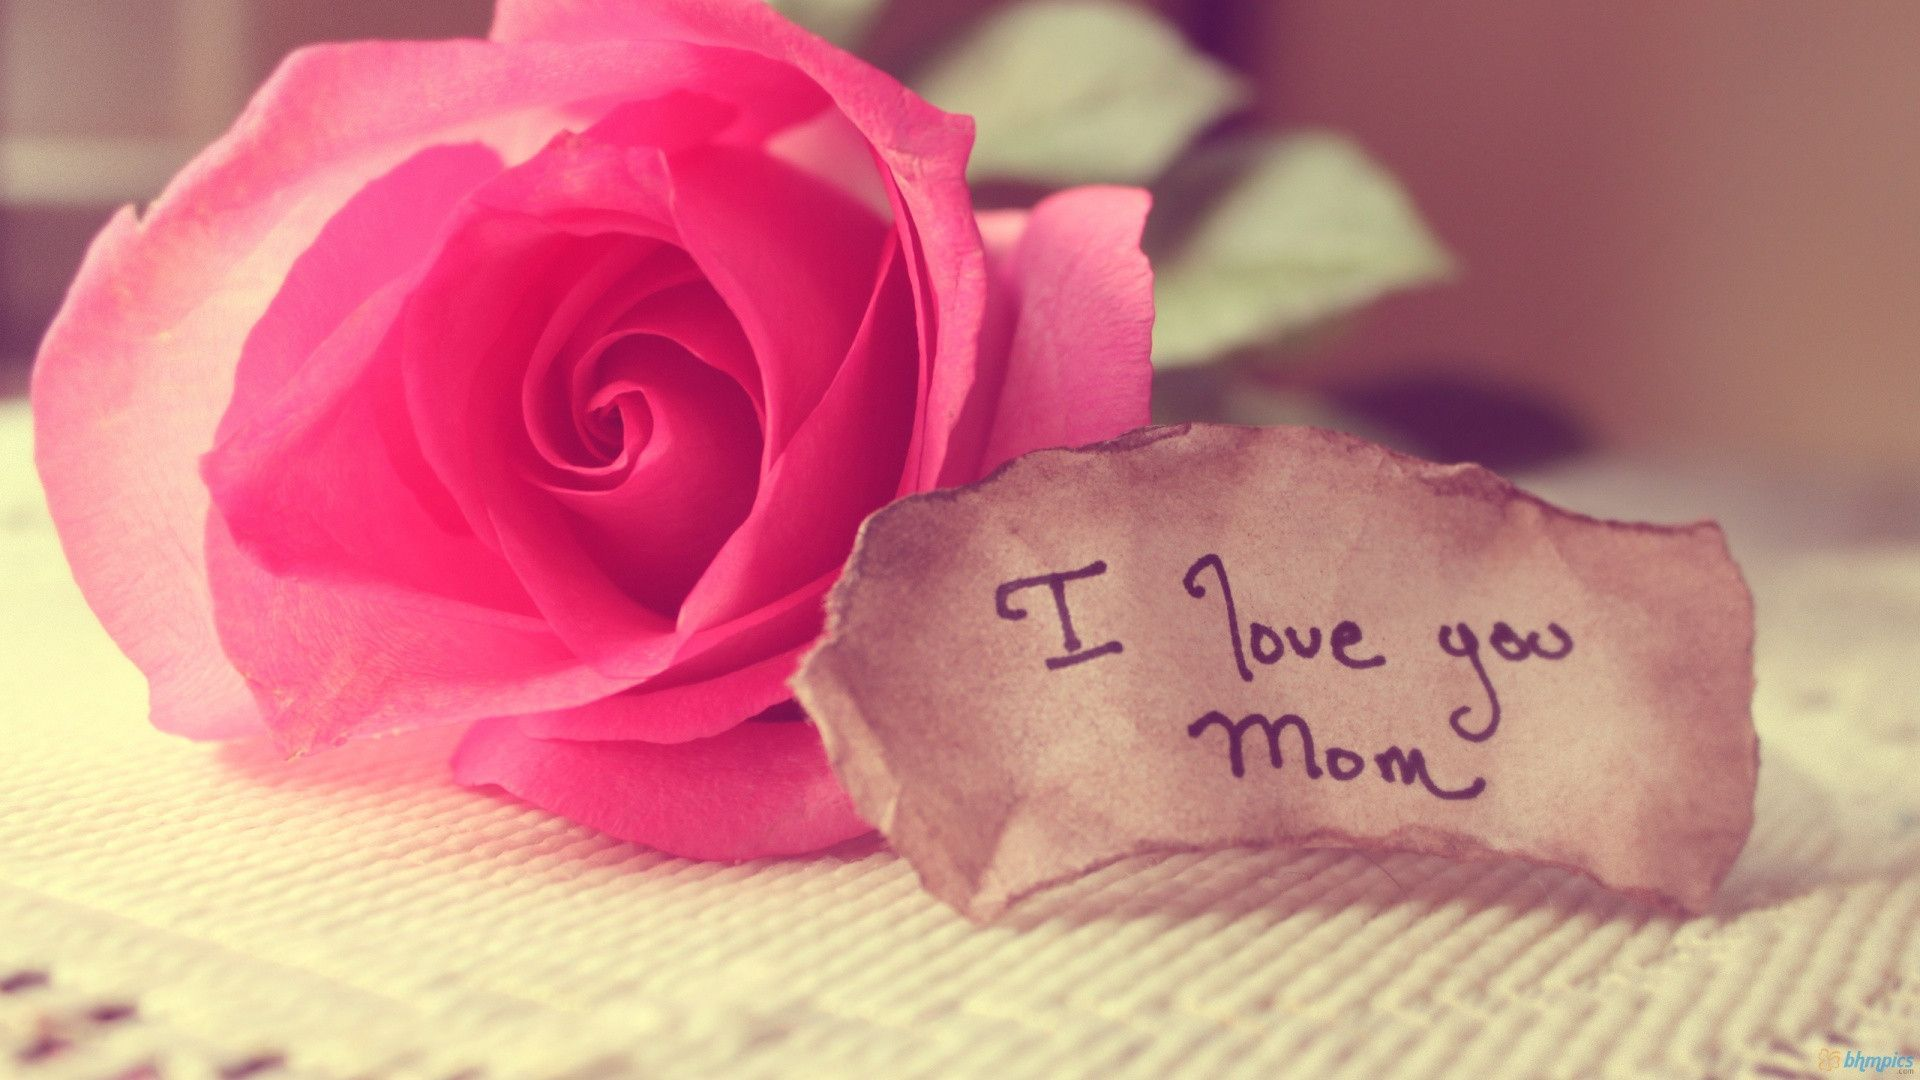 I Love You Mom Wallpapers